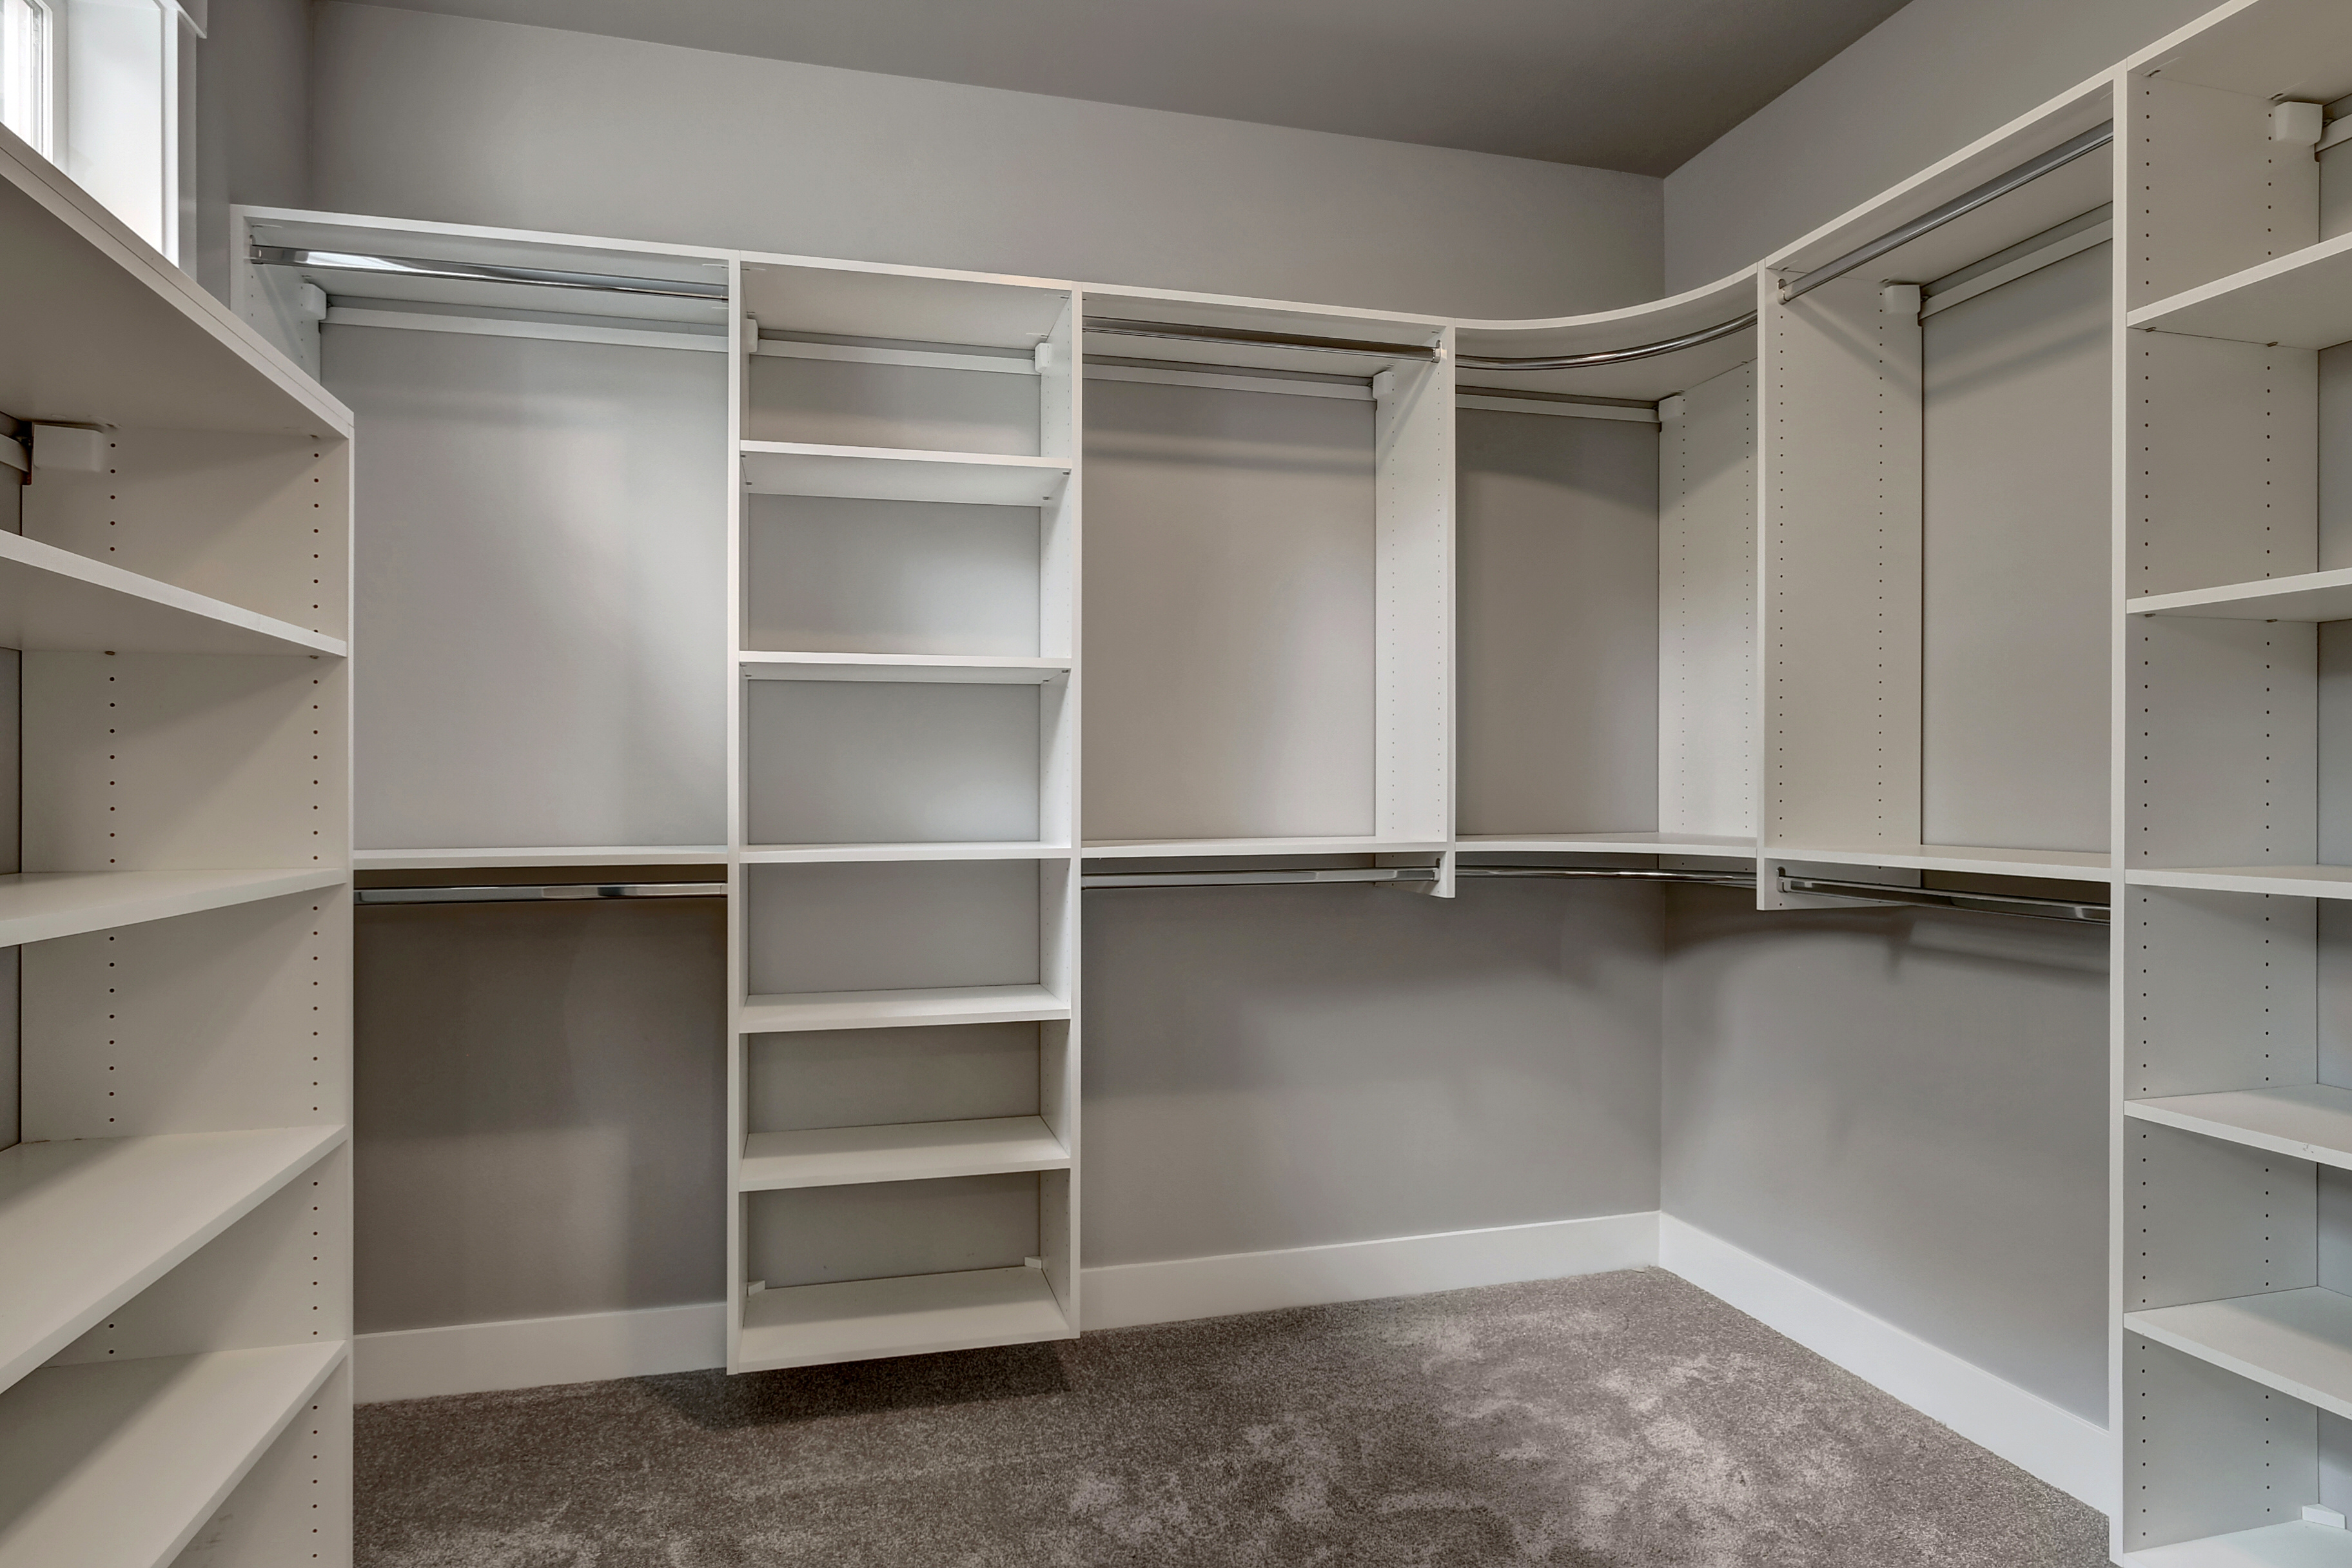 Master closet with melamine built-in shelving system closet organizer